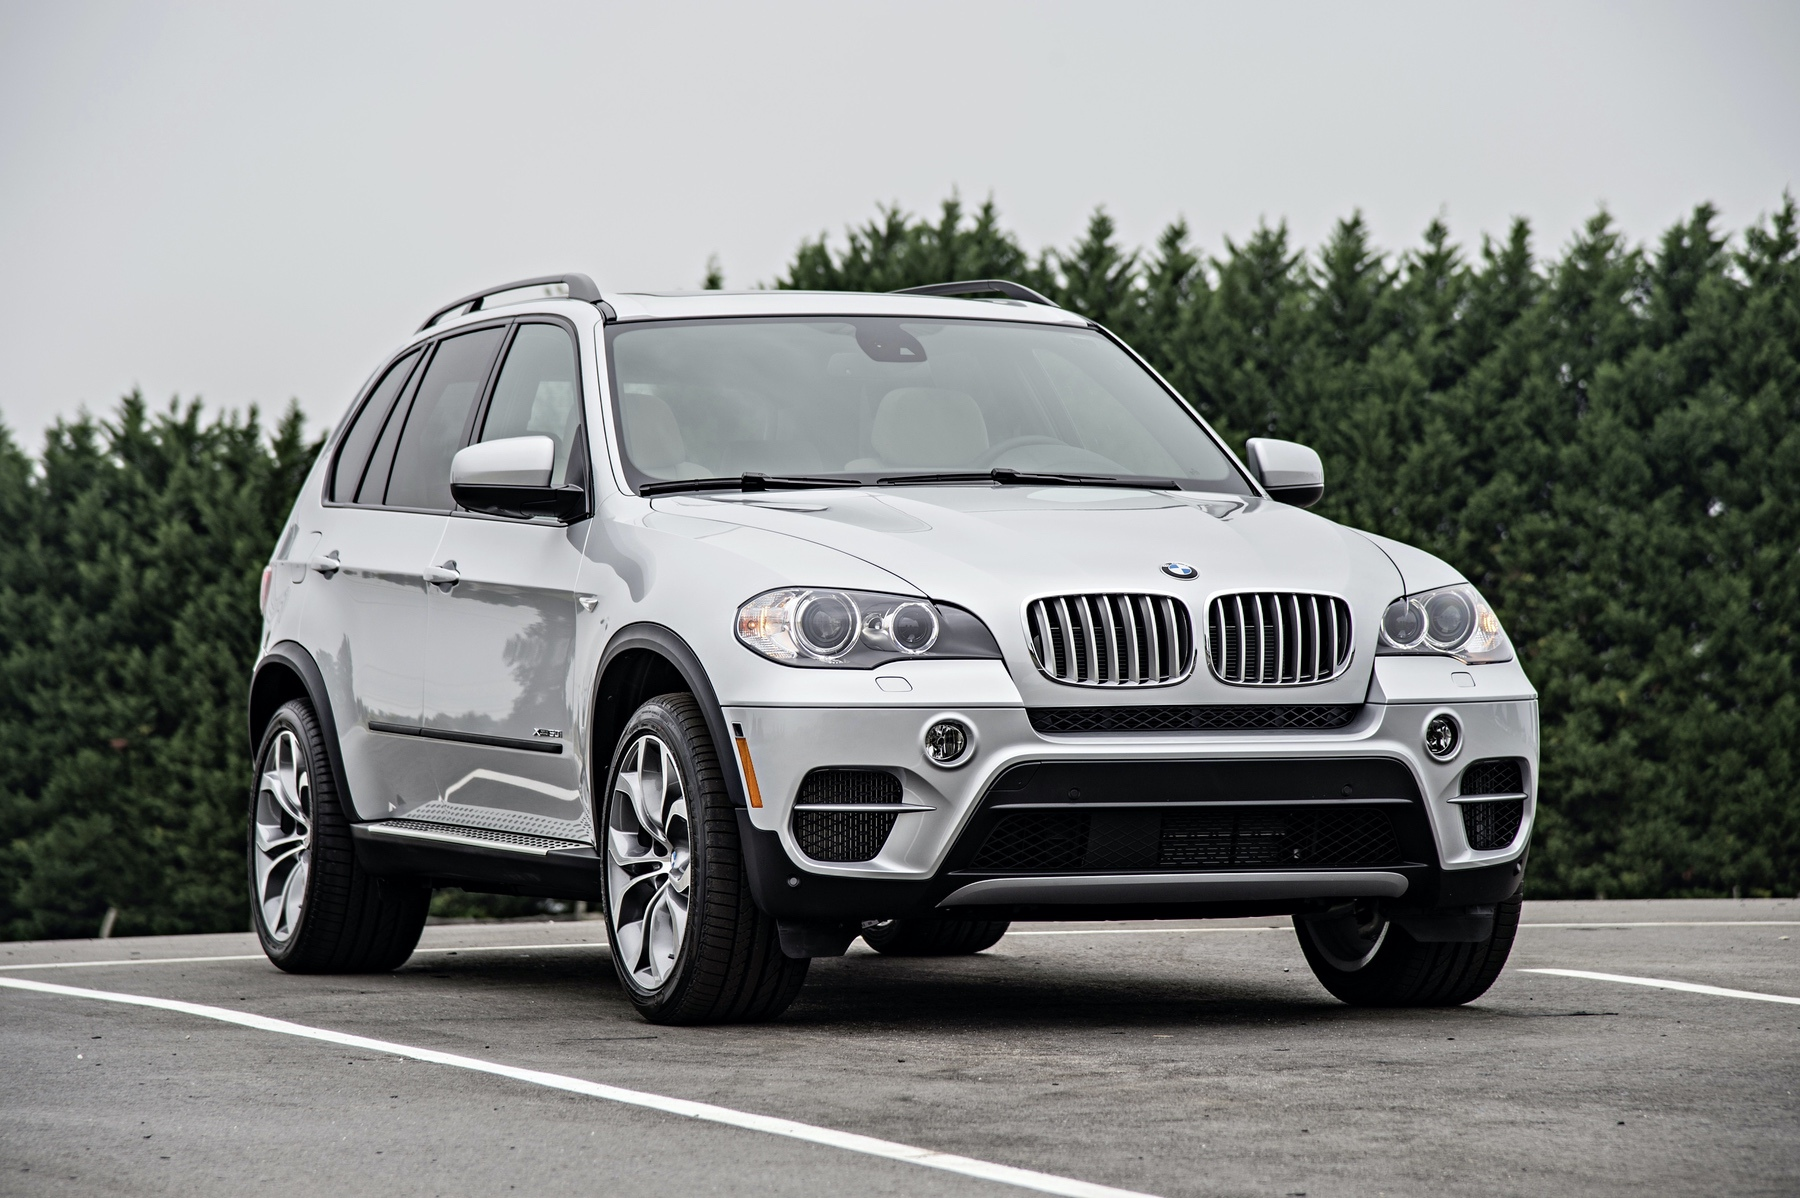 Comparison All New 2019 Bmw X5 Vs The Old X5s Bimmerfile